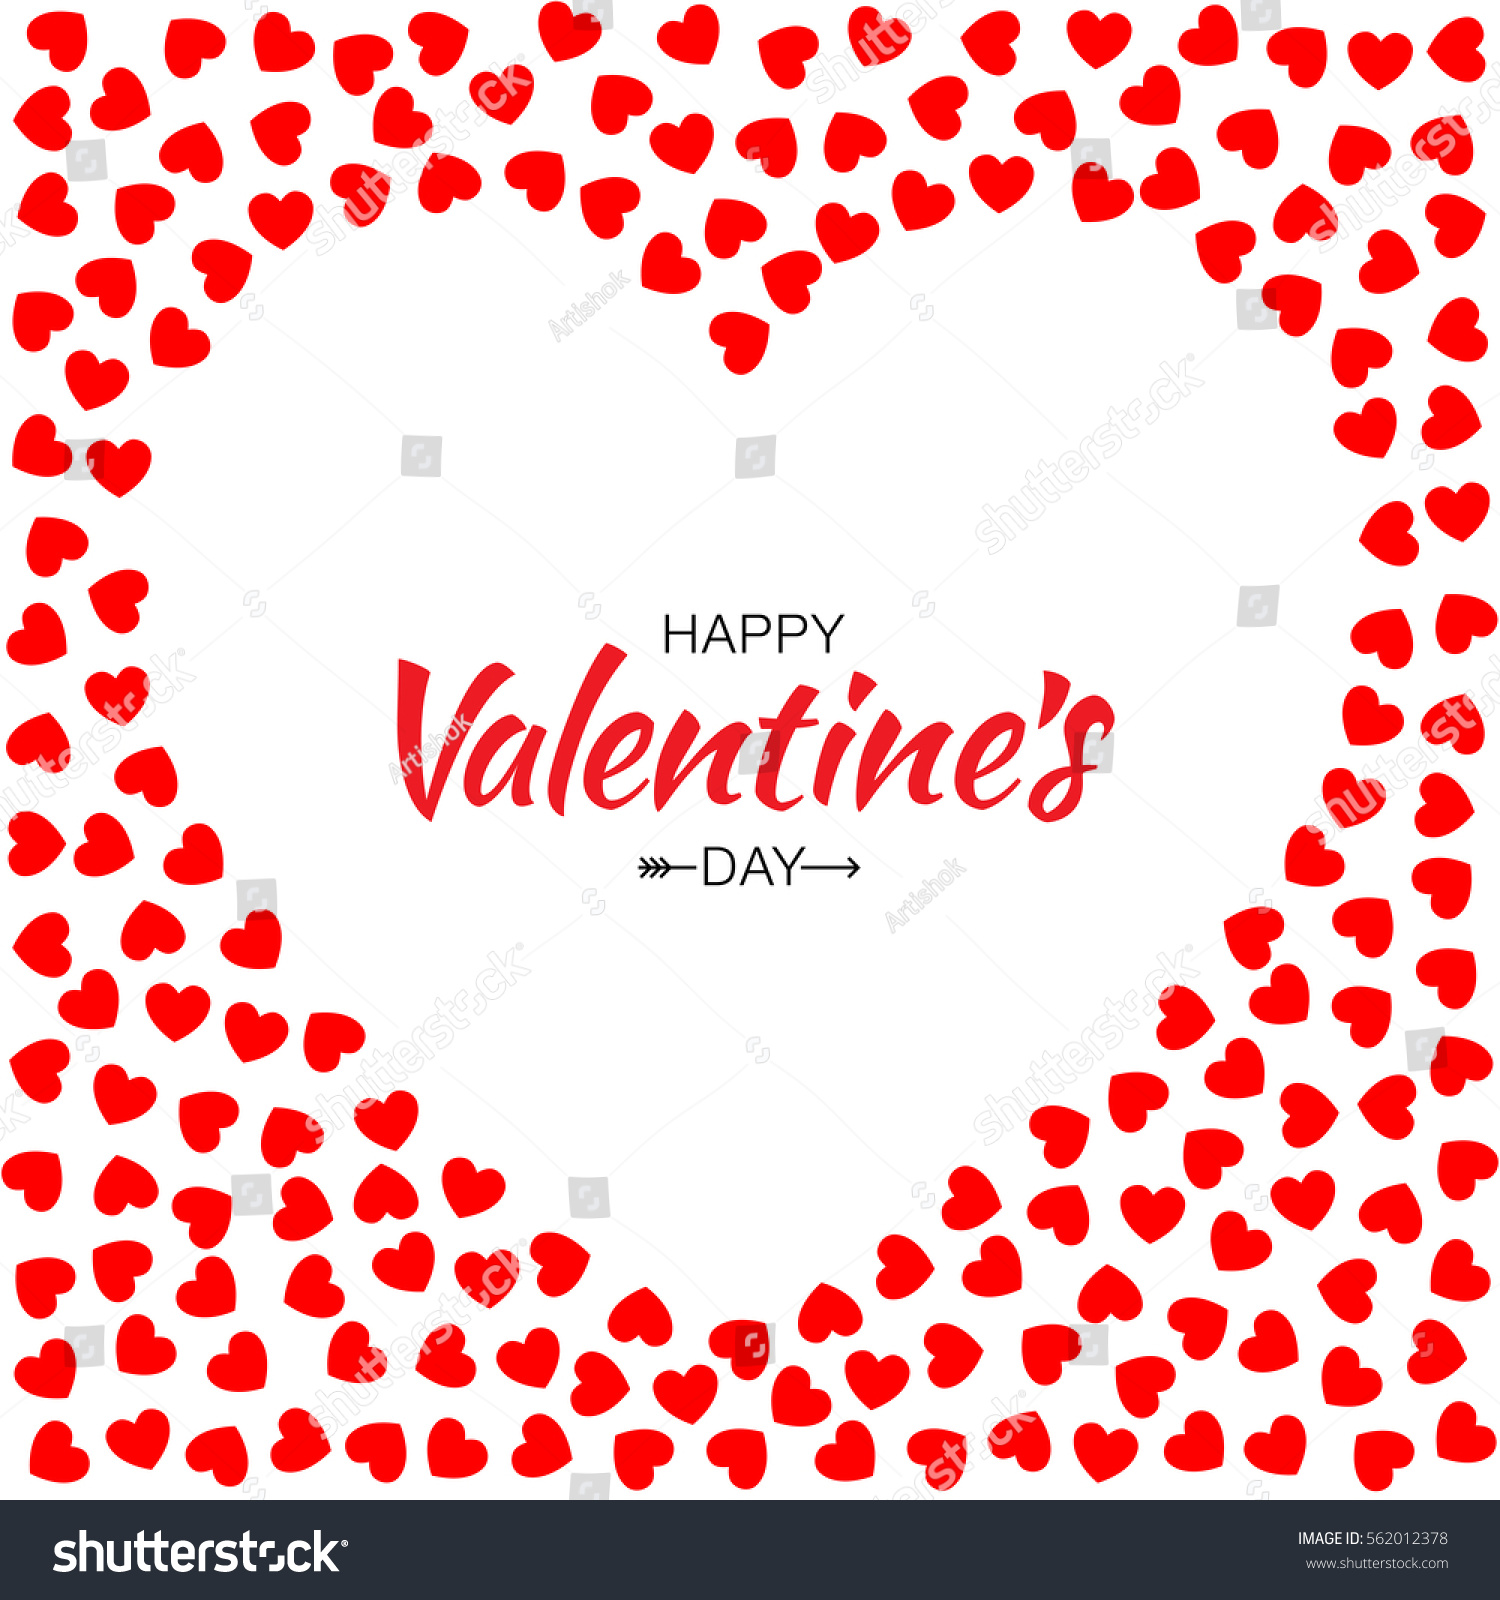 Abstract red small hearts background valentines stock vector hd abstract red small hearts background for valentines day design vector illustration card with white heart stopboris Images